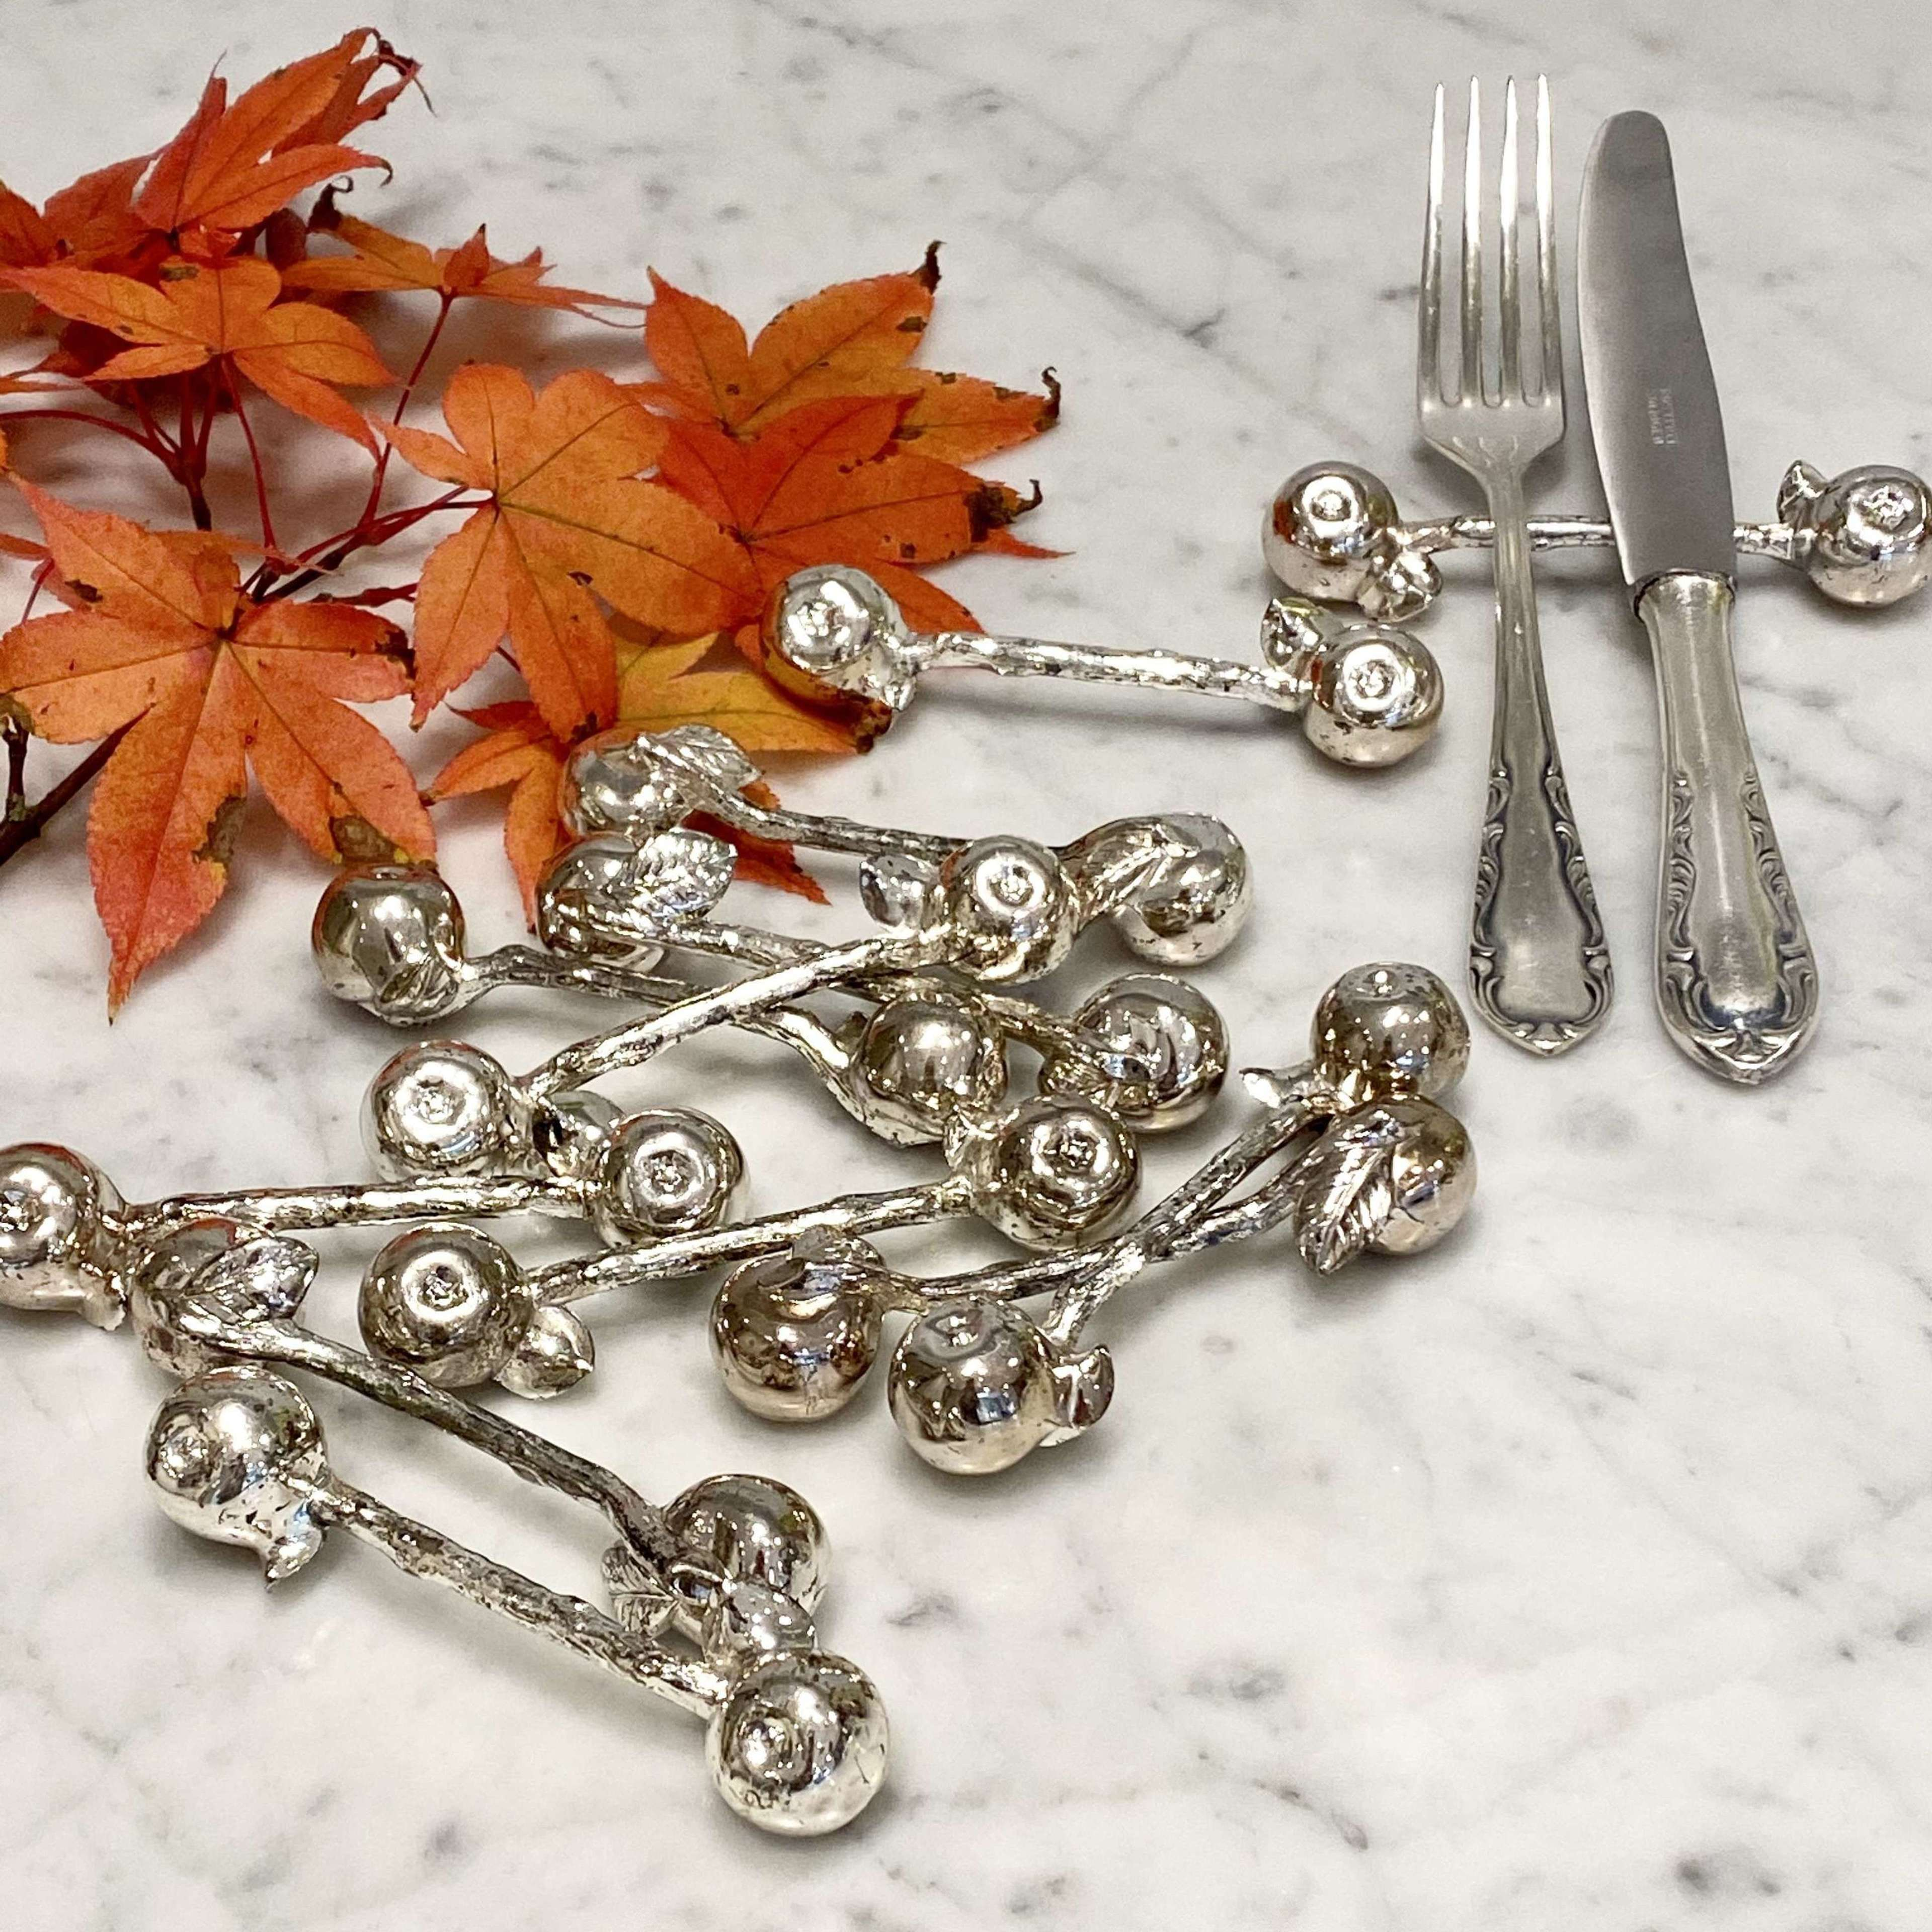 Set of 12 vintage silver plated Apple cutlery rests